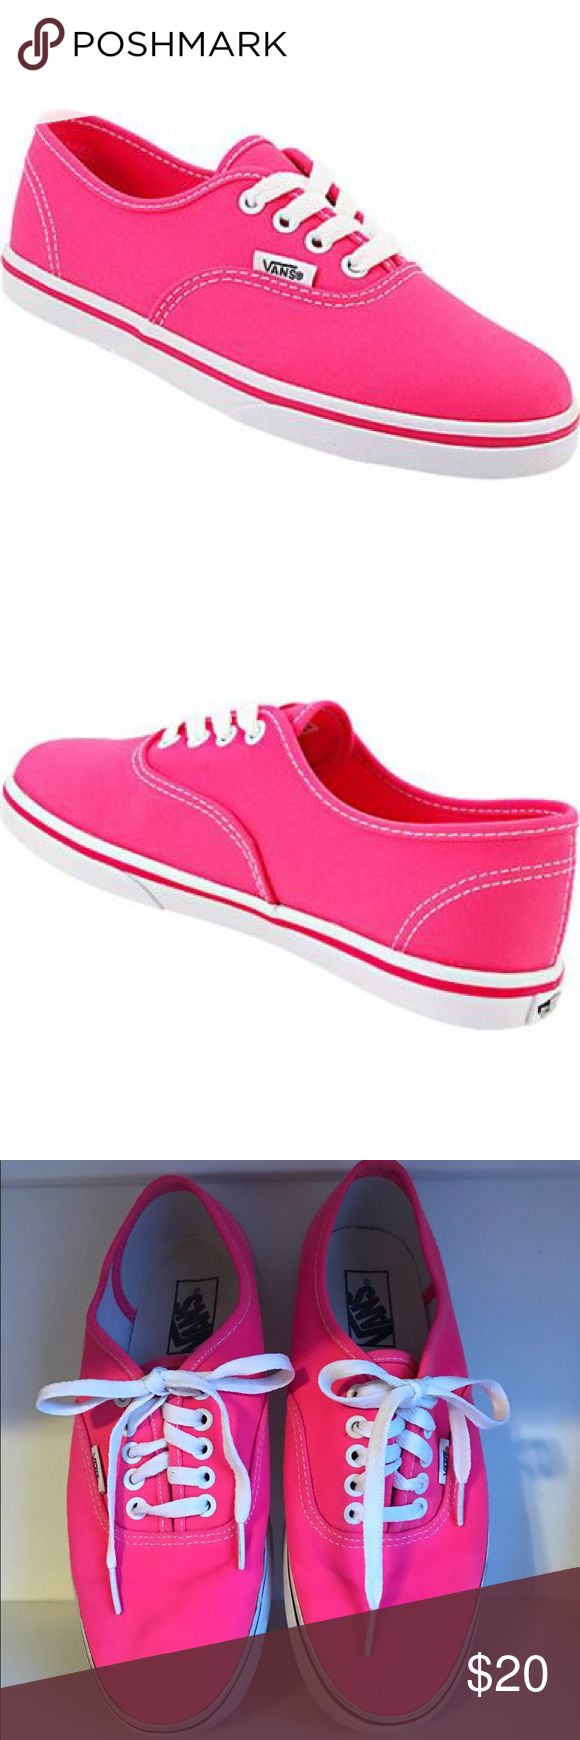 Vans Authentic Lo Pro Skate Shoes Brighten upper your summer attire this year with the vibrant Authentic Lo Pro skate shoe from Vans. This low-profile shoe features a canvas upper and creates a great in-shoe feel that will keep your feet feeling great all day long. In great condition! ❣️ smoke-free home ❣️ Vans Shoes Sneakers